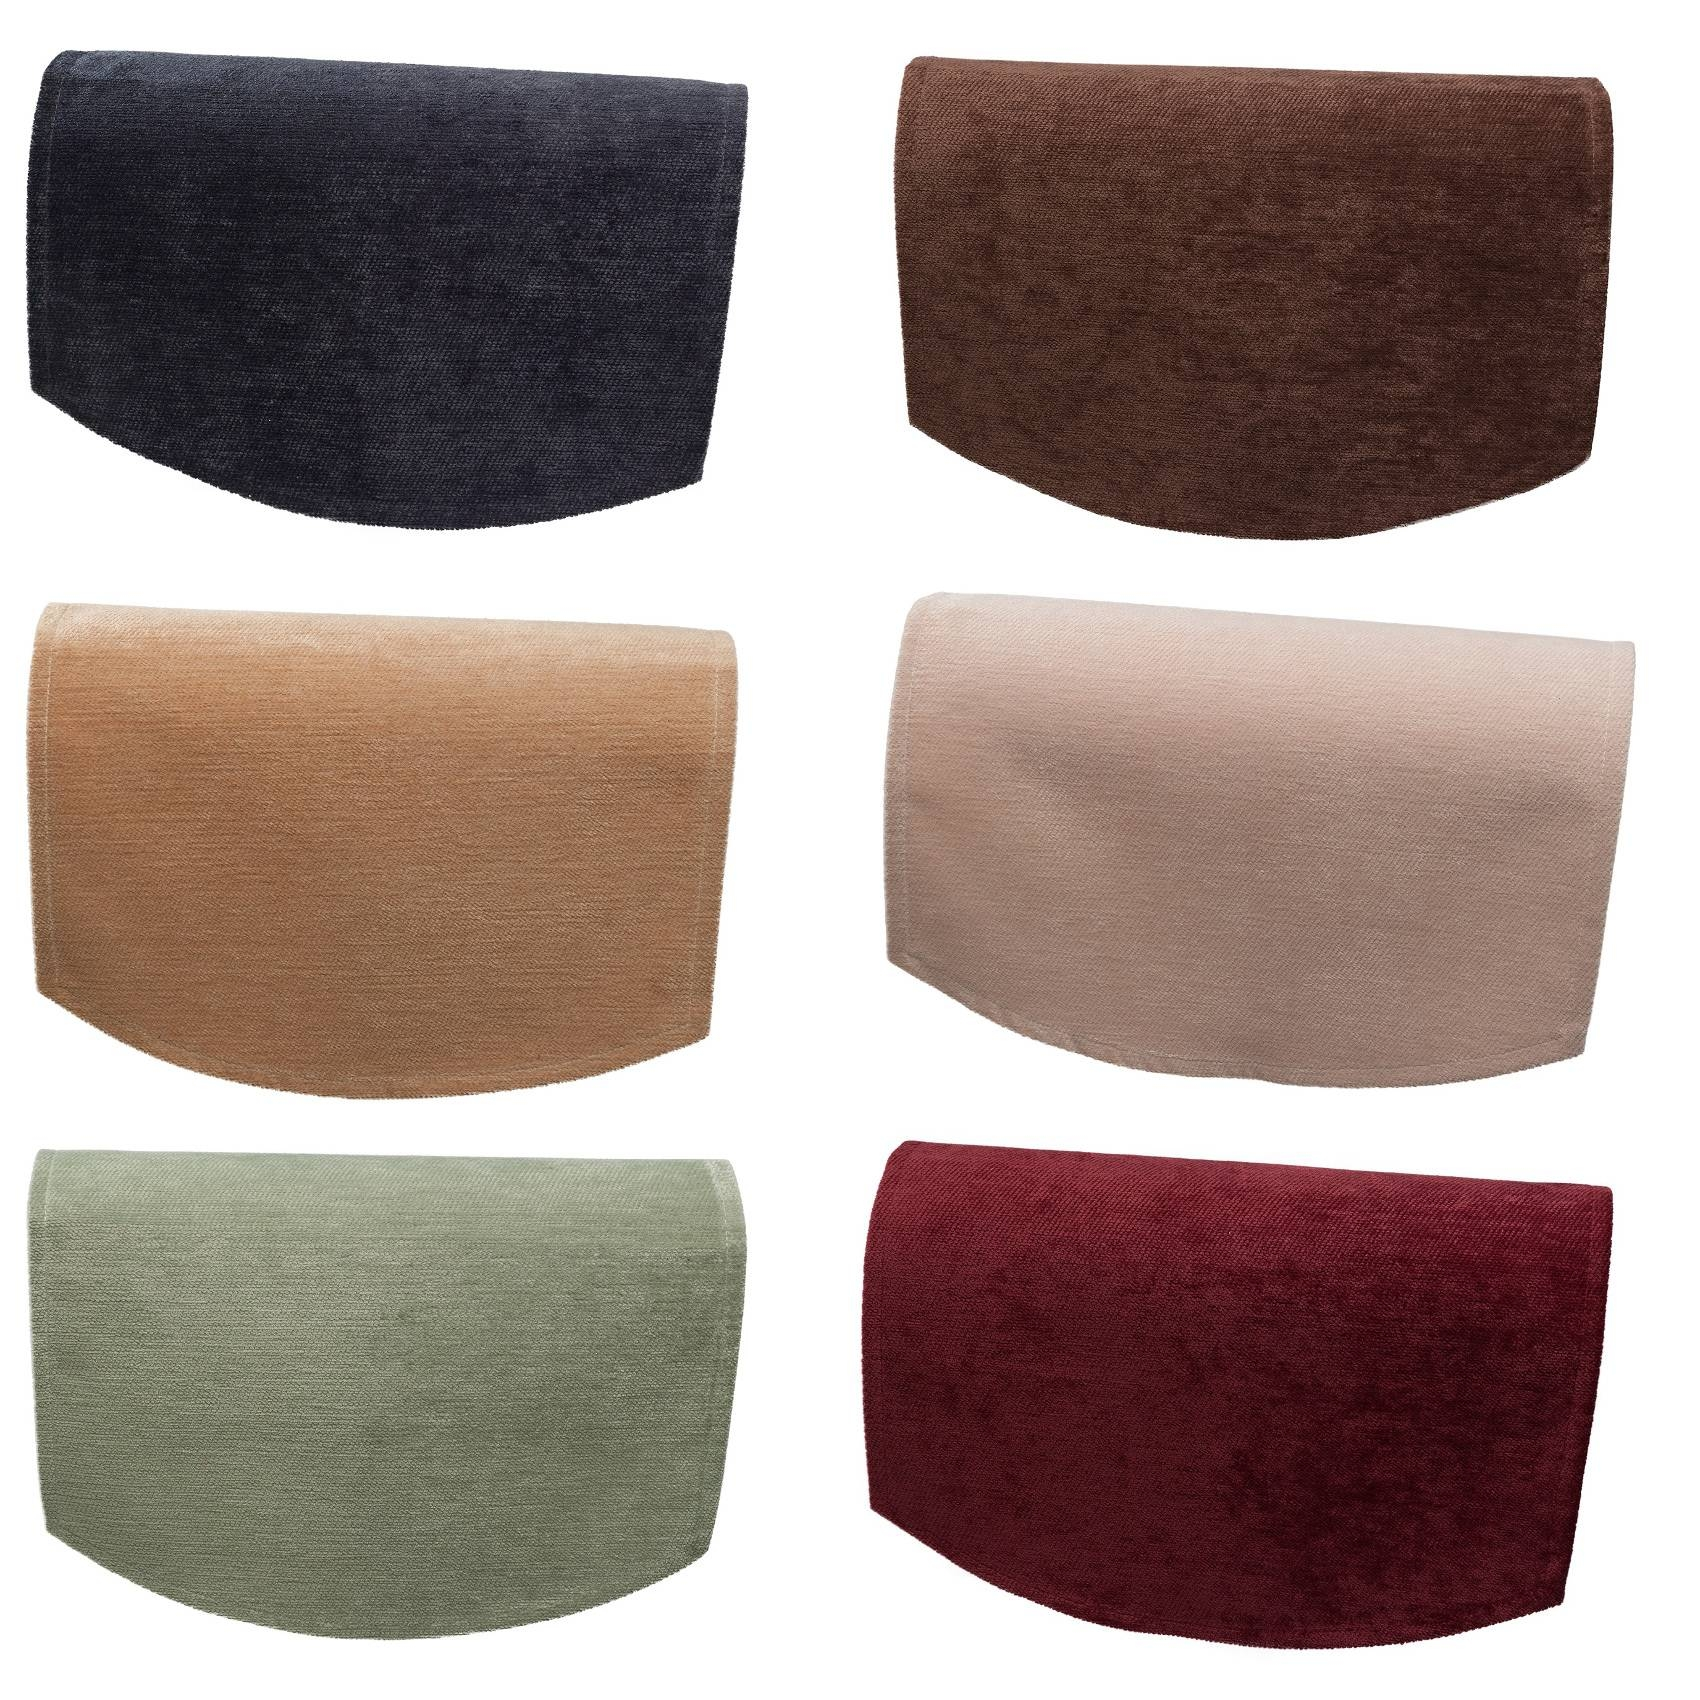 Arm Caps For Sofas Uk | Centerfieldbar for Armchair Armrest Covers (Image 2 of 15)